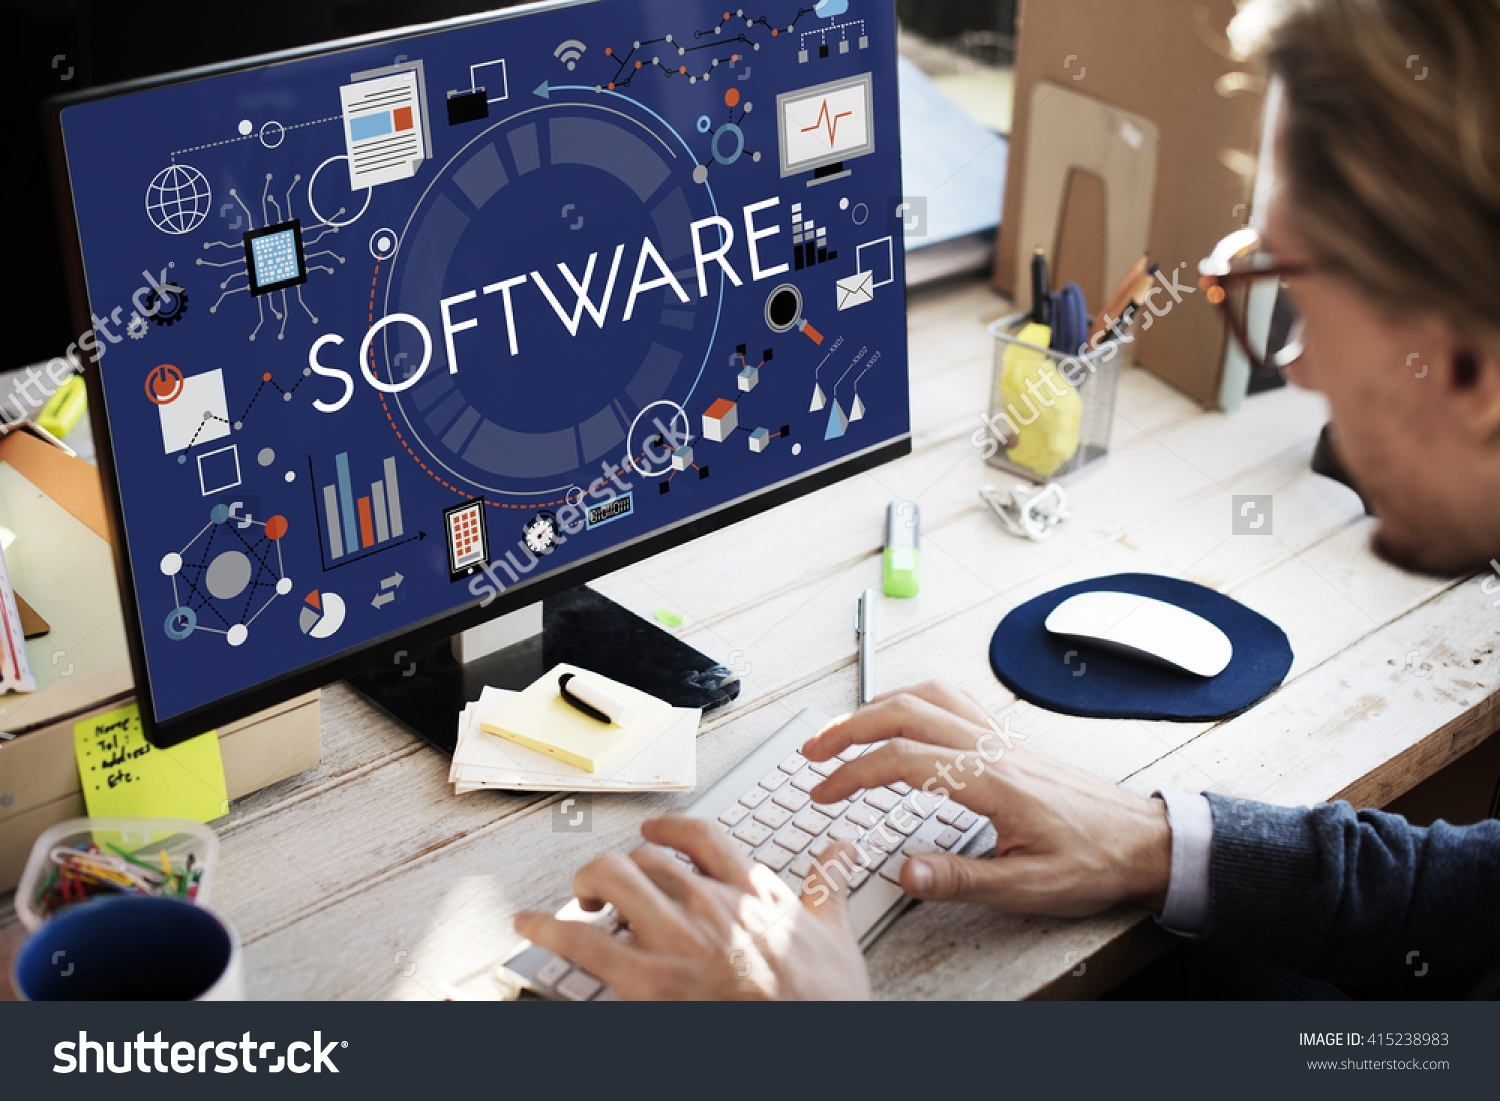 Man using computer screen that says software